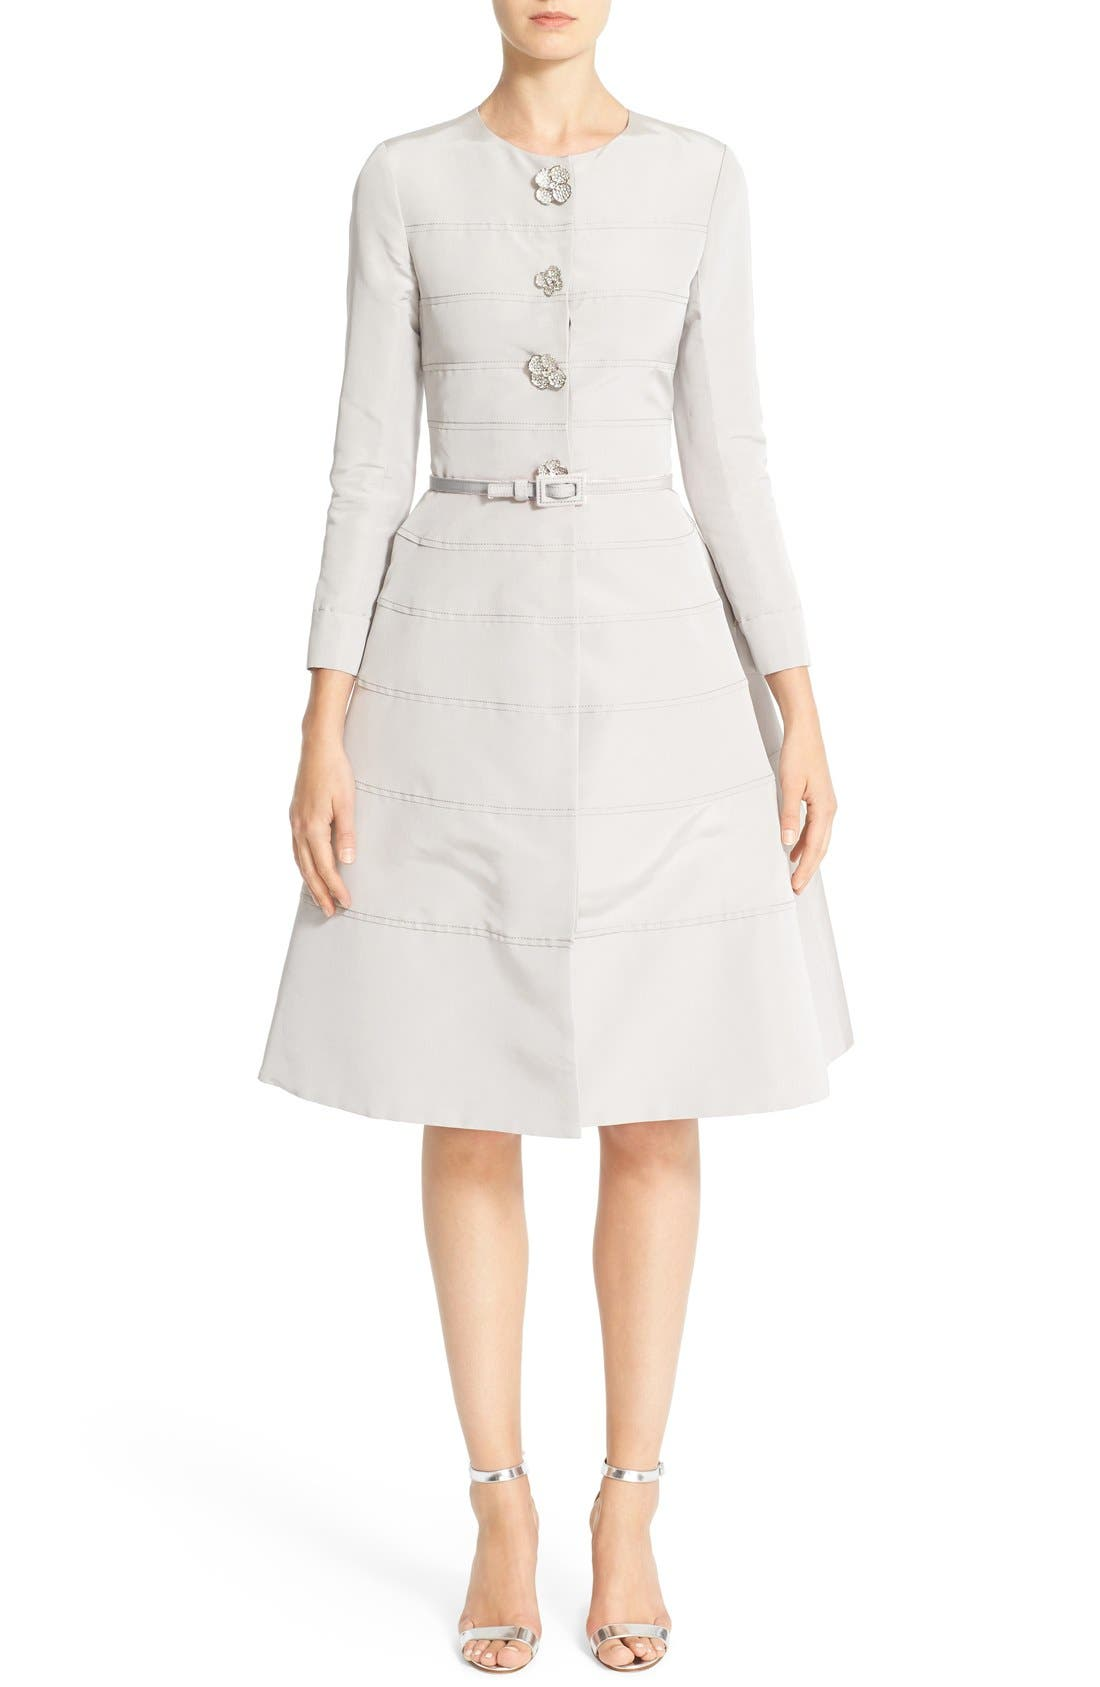 Alternate Image 1 Selected - Carolina Herrera Embellished Belted Silk Faille A-Line Dress